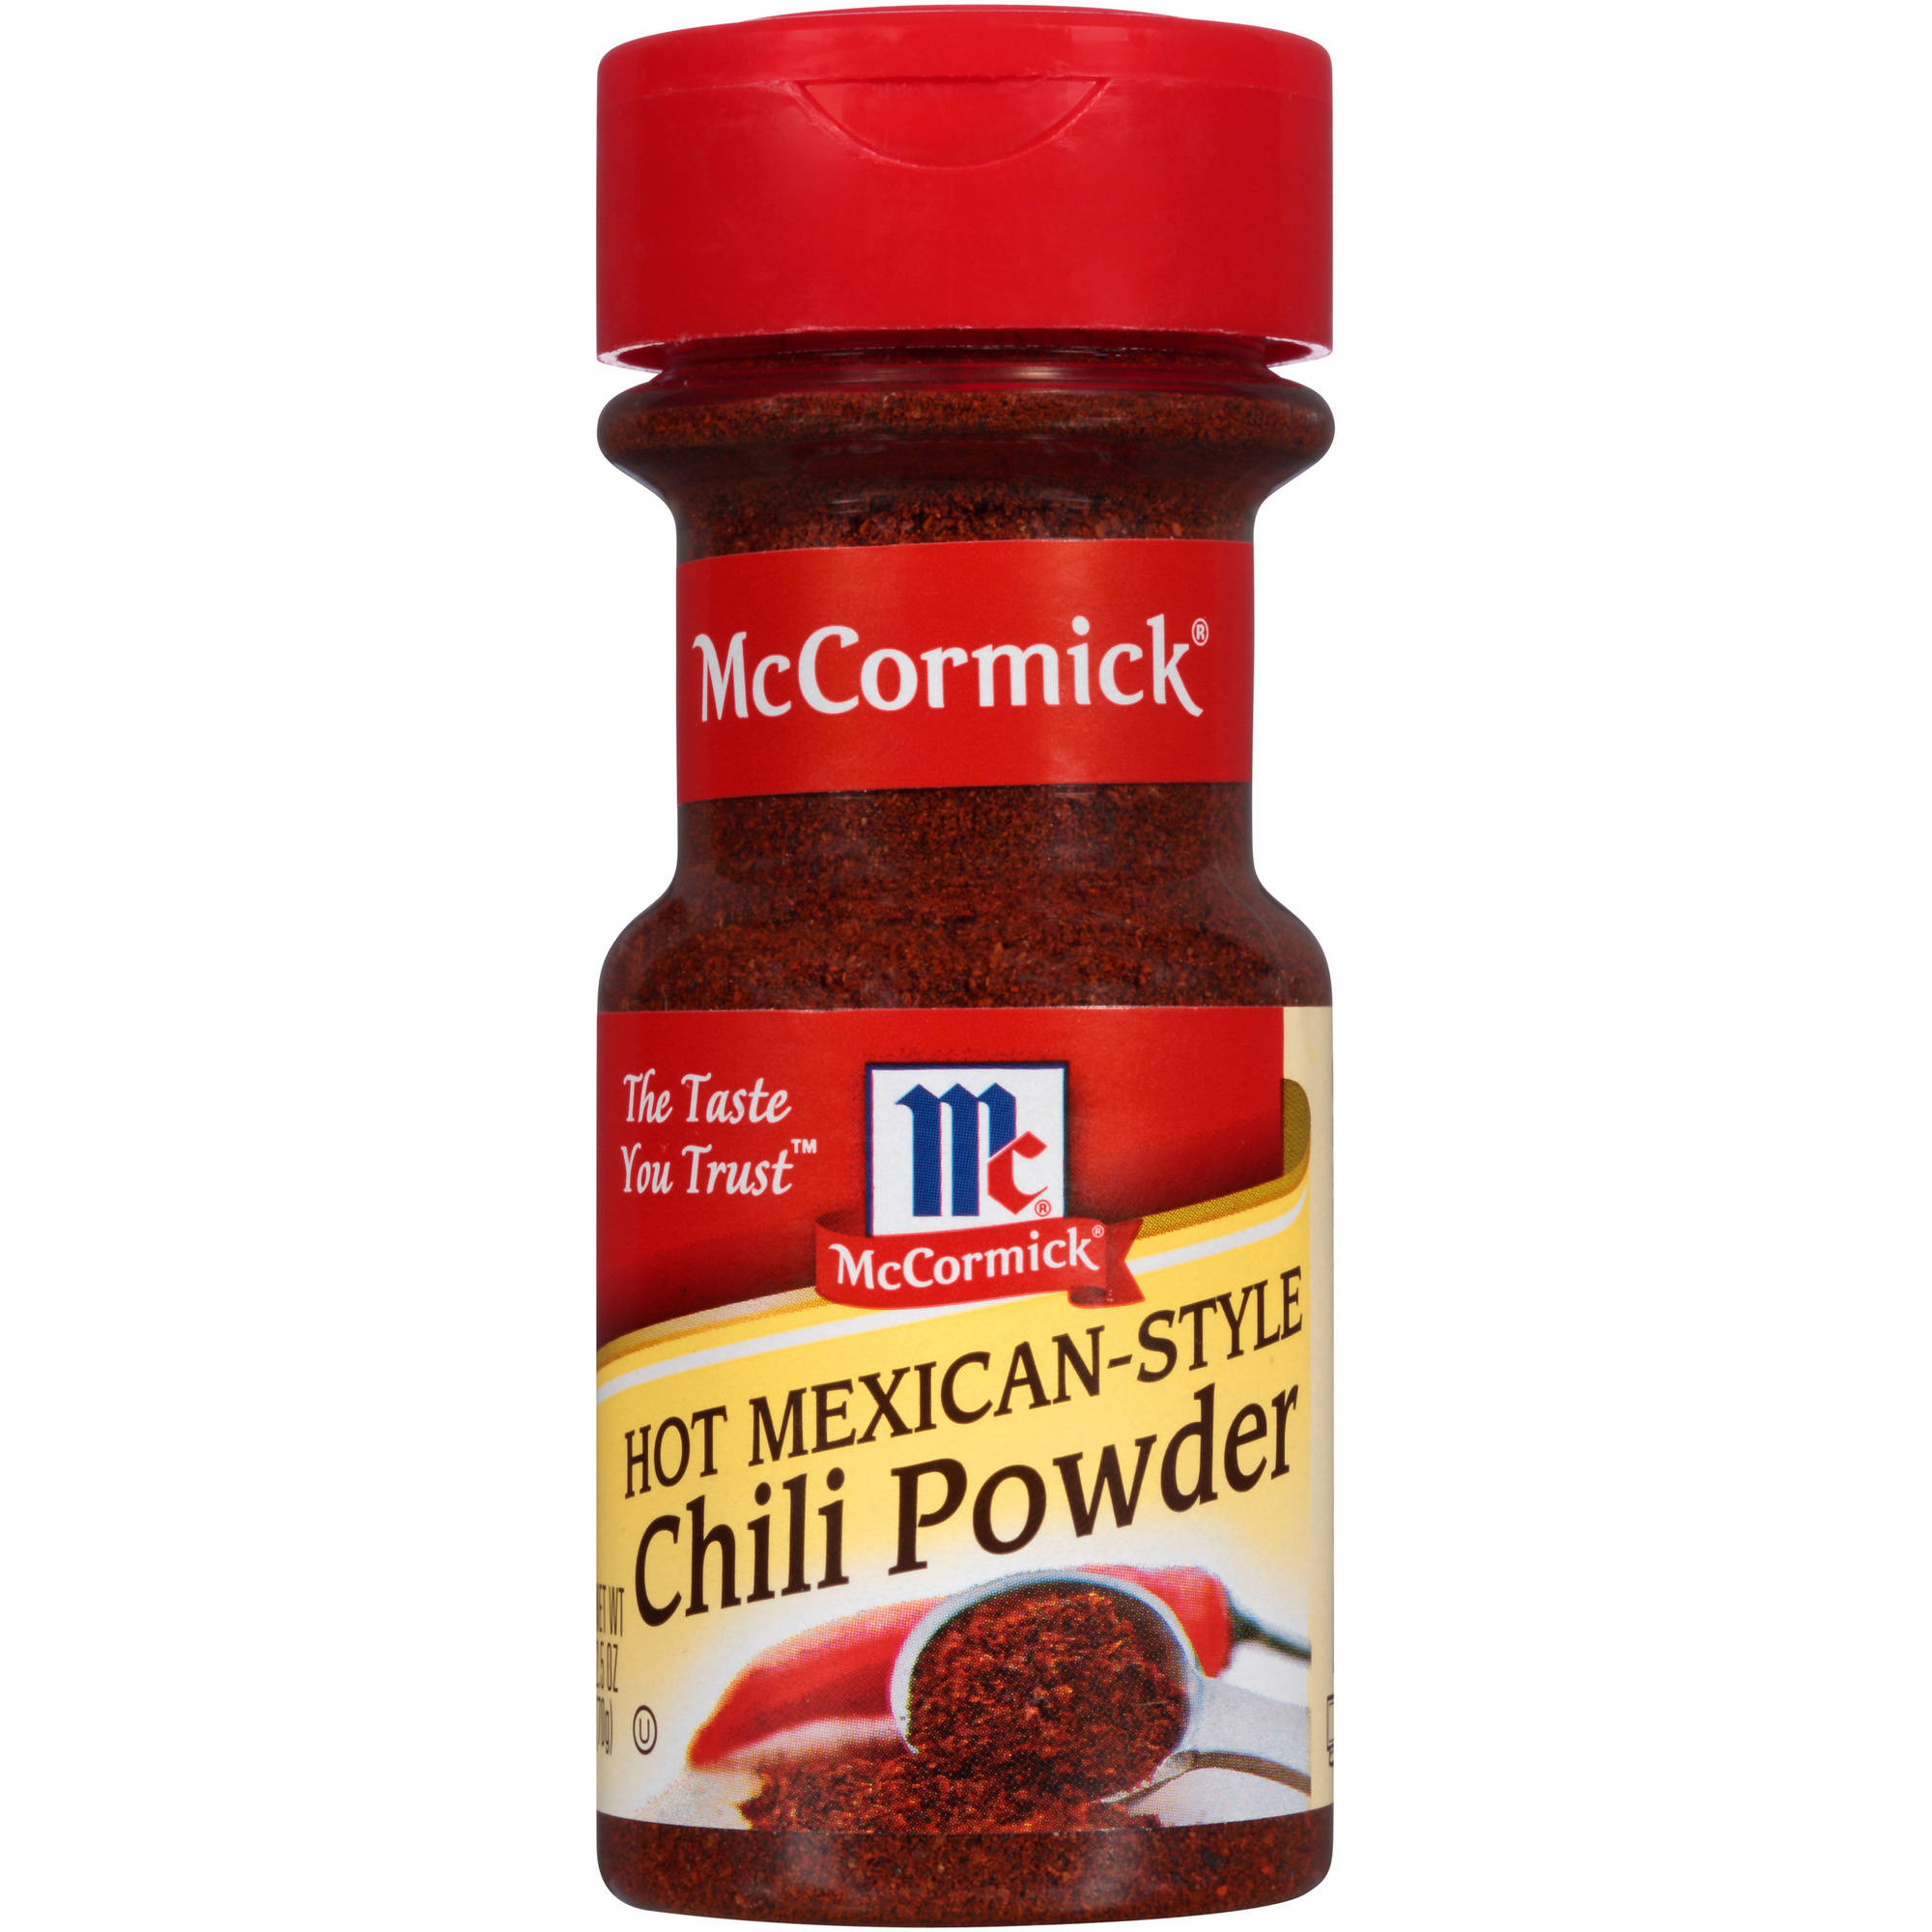 McCormick Hot Mexican-Style Chili Powder, 2.5 oz